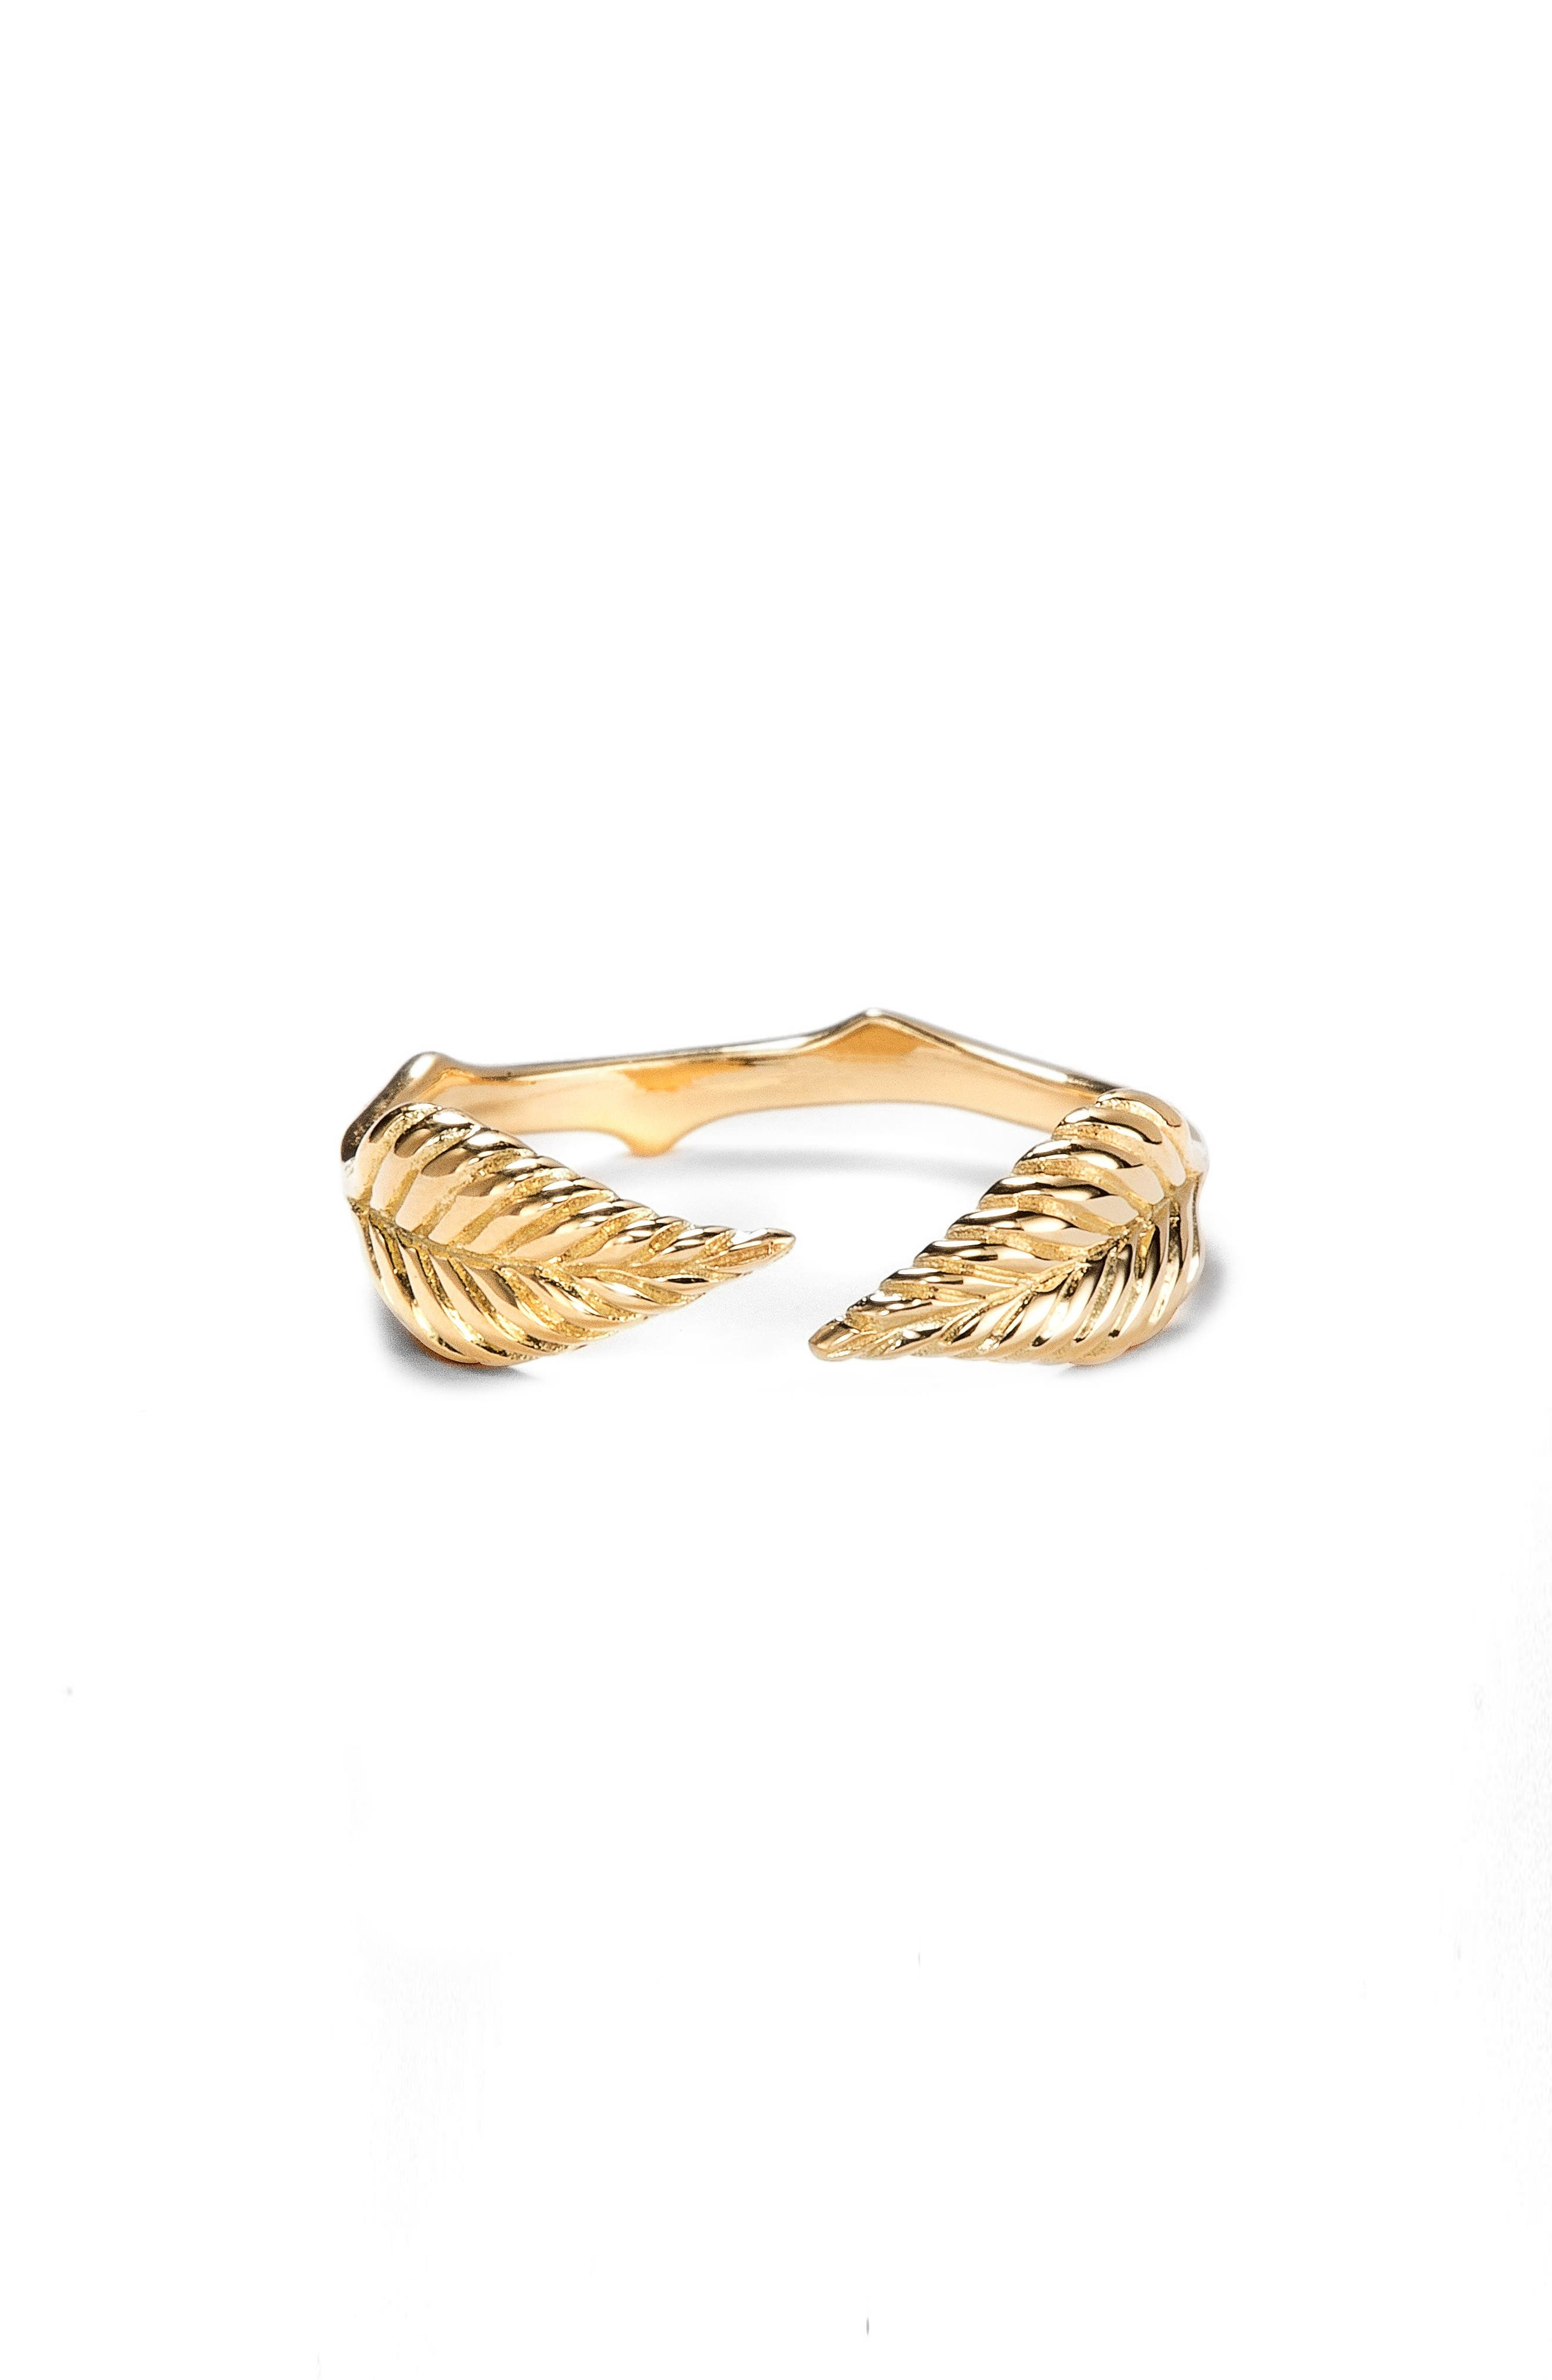 Double Leaf Open Ring,                             Main thumbnail 1, color,                             YELLOW GOLD